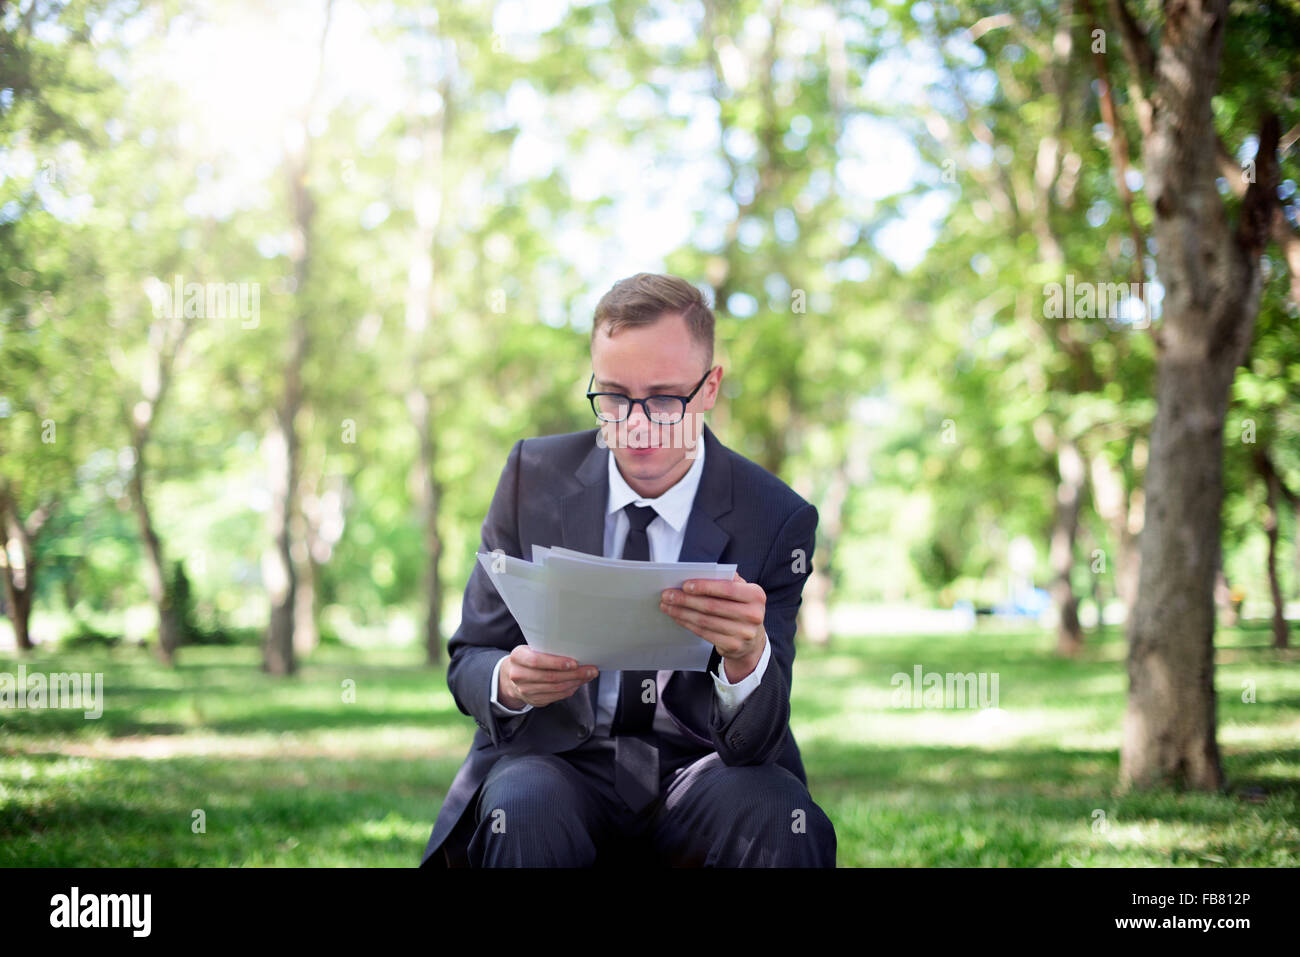 Businessman Stressful Sadness Failure Concept - Stock Image